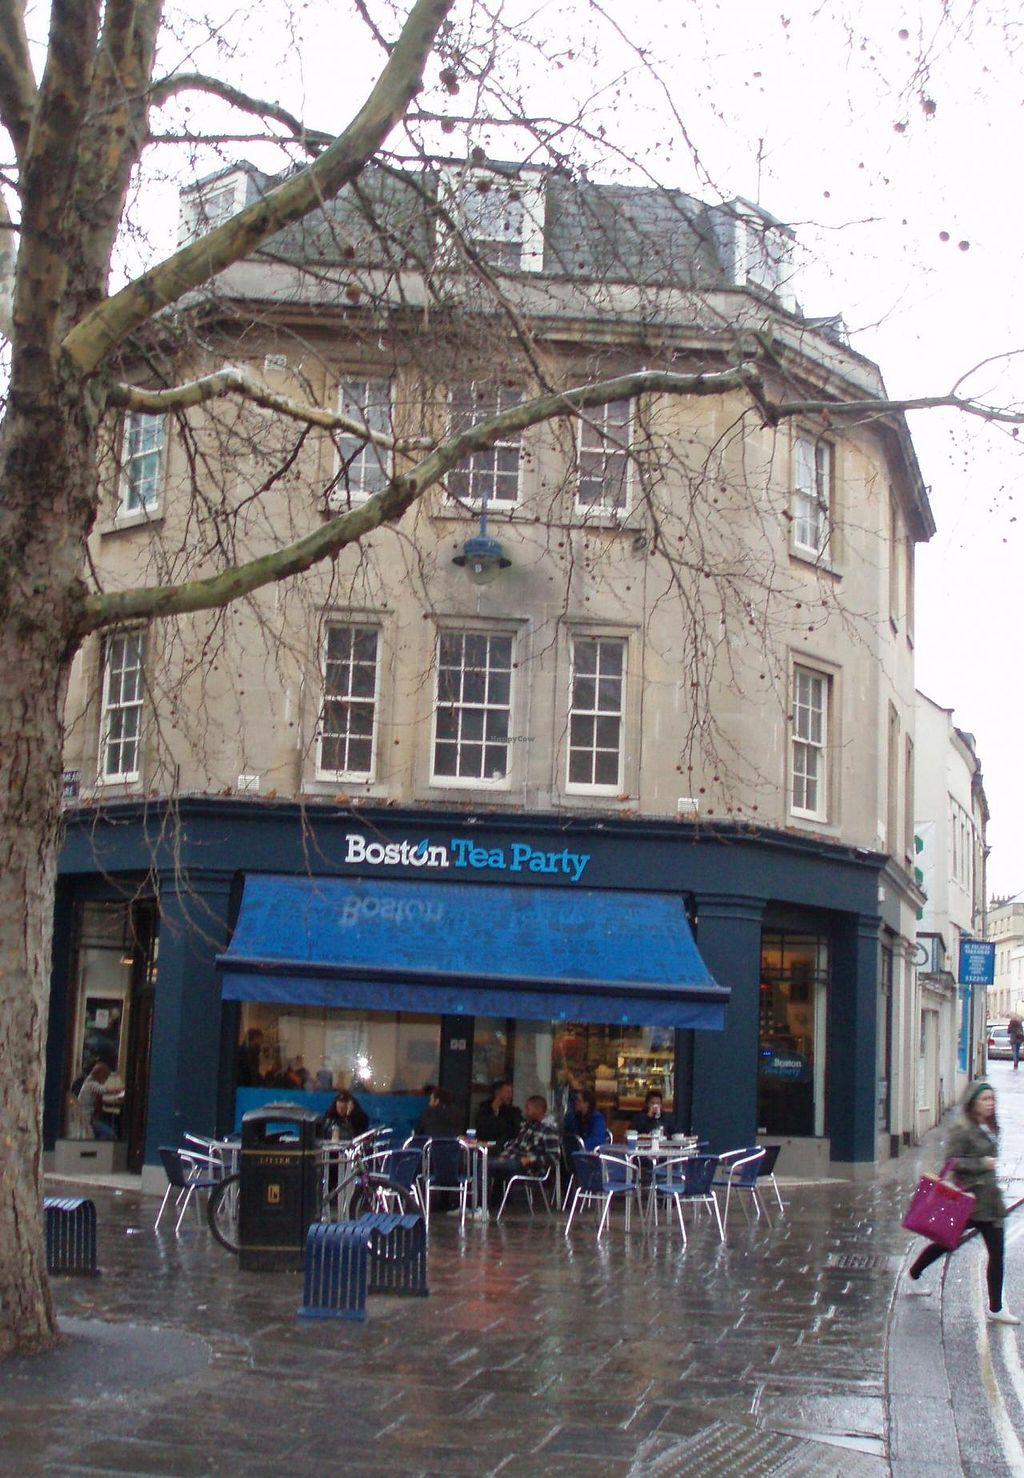 """Photo of Boston Tea Party  by <a href=""""/members/profile/Pamina"""">Pamina</a> <br/>Boston Tea Party, Bath <br/> May 24, 2014  - <a href='/contact/abuse/image/8106/70632'>Report</a>"""